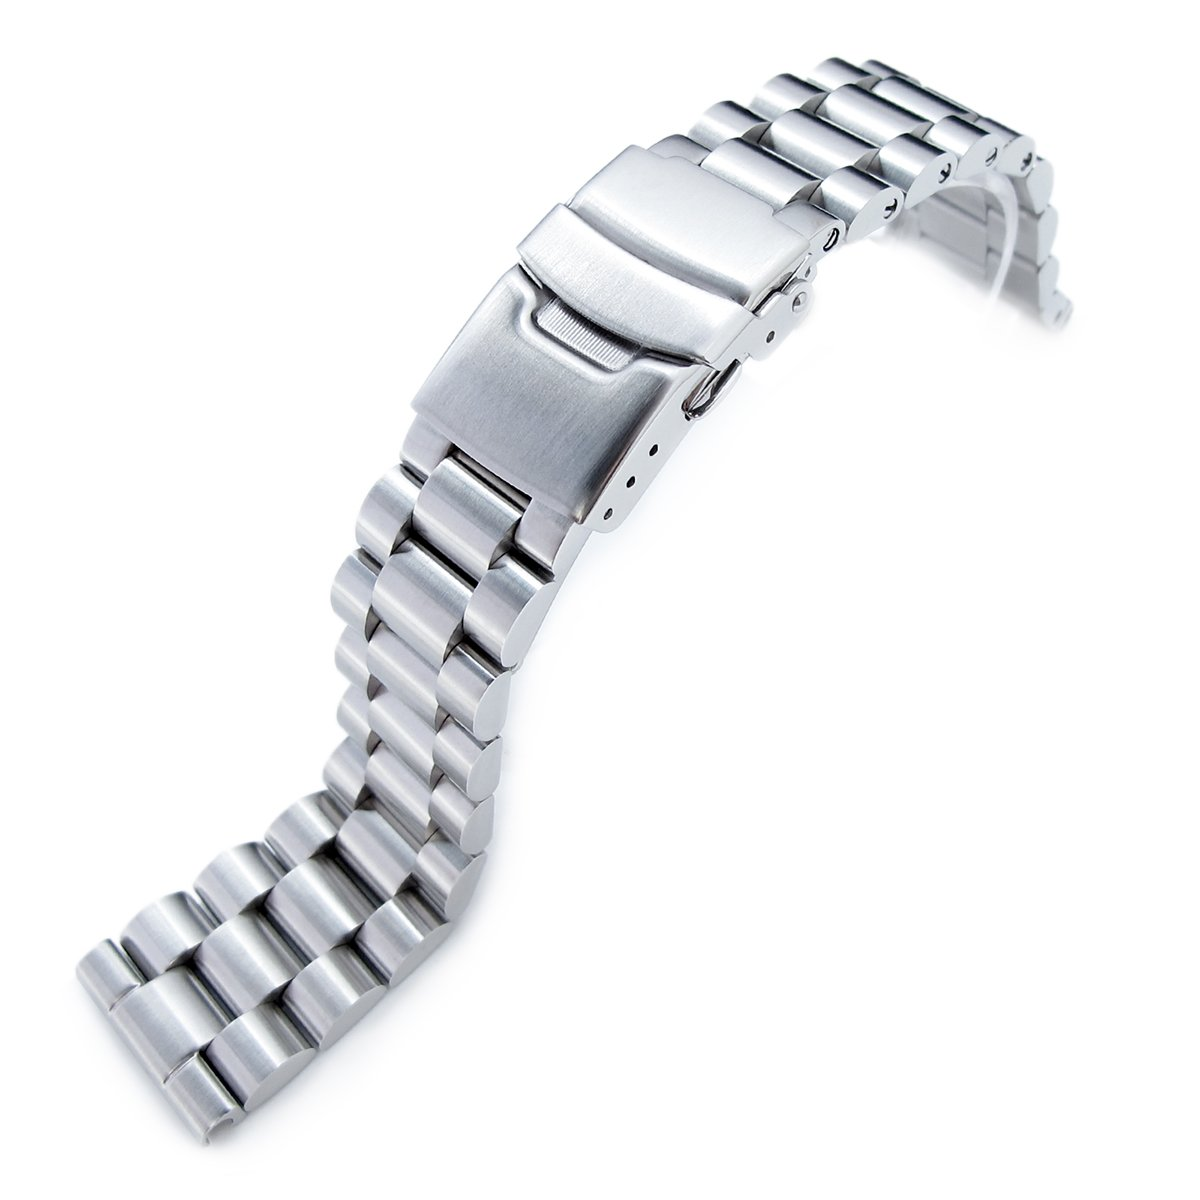 22mm Endmill Solid Metal Watch Bracelet, 316L Stainless Steel, Straight End